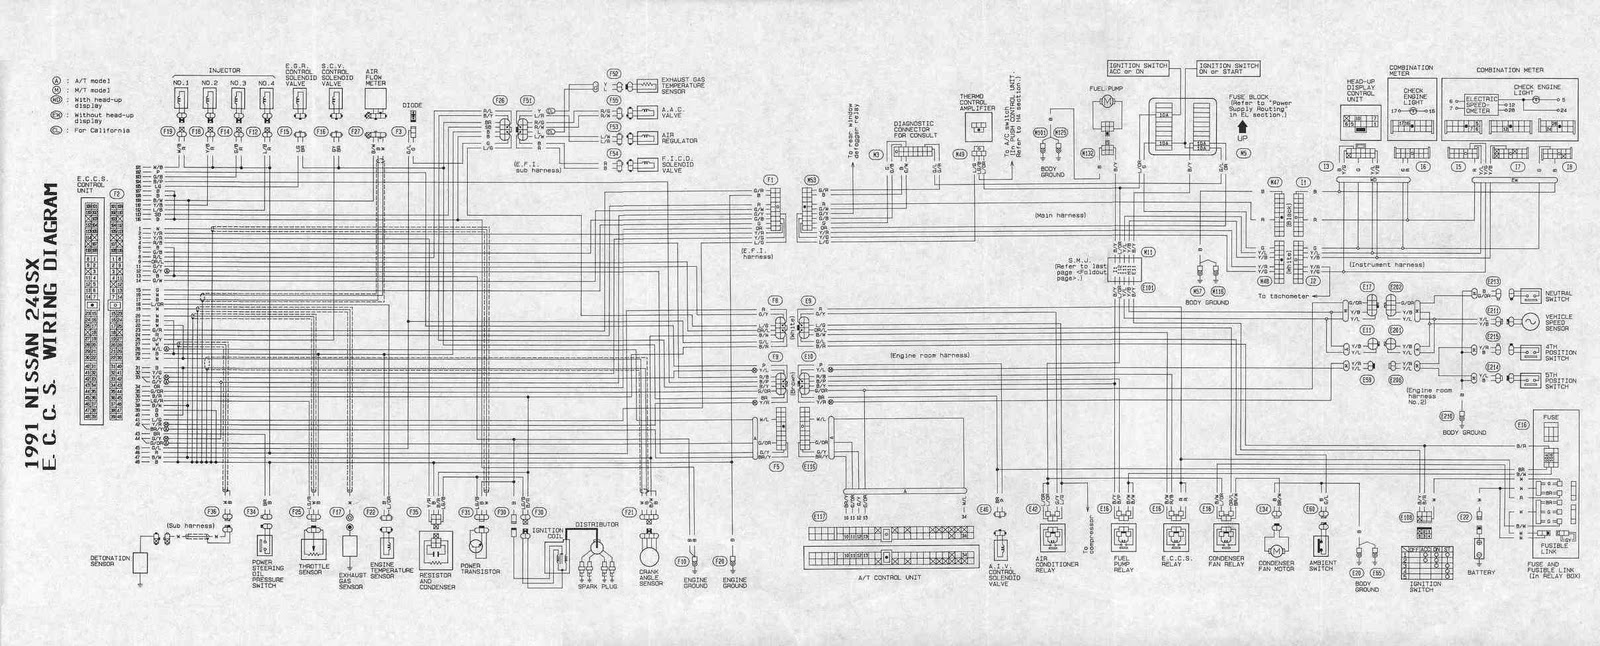 240sx Wiring Diagram Honda Z50 Www Toyskids Co Nissan 1991 Eccs All About Stereo Pdf